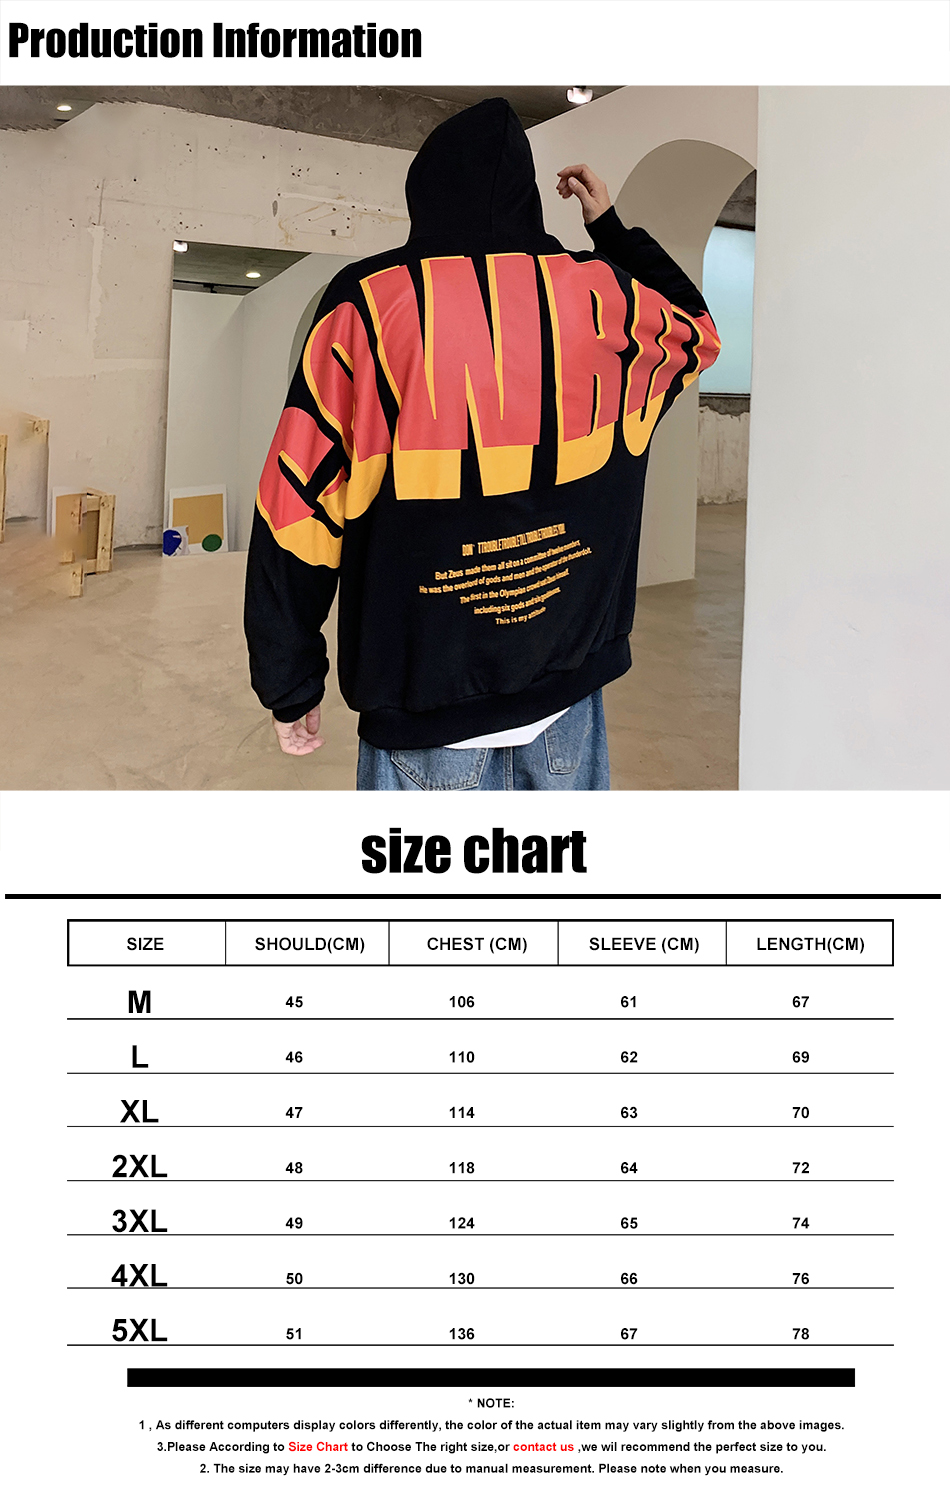 H0911f0122c544860a0000d7471257671o - LAPPSTER Men Japanese Streetwear Hip Hop Hoodies Autumn Korean Oversized Sweatshirts Hooded Hoodies Patchwork Clothing 5XL